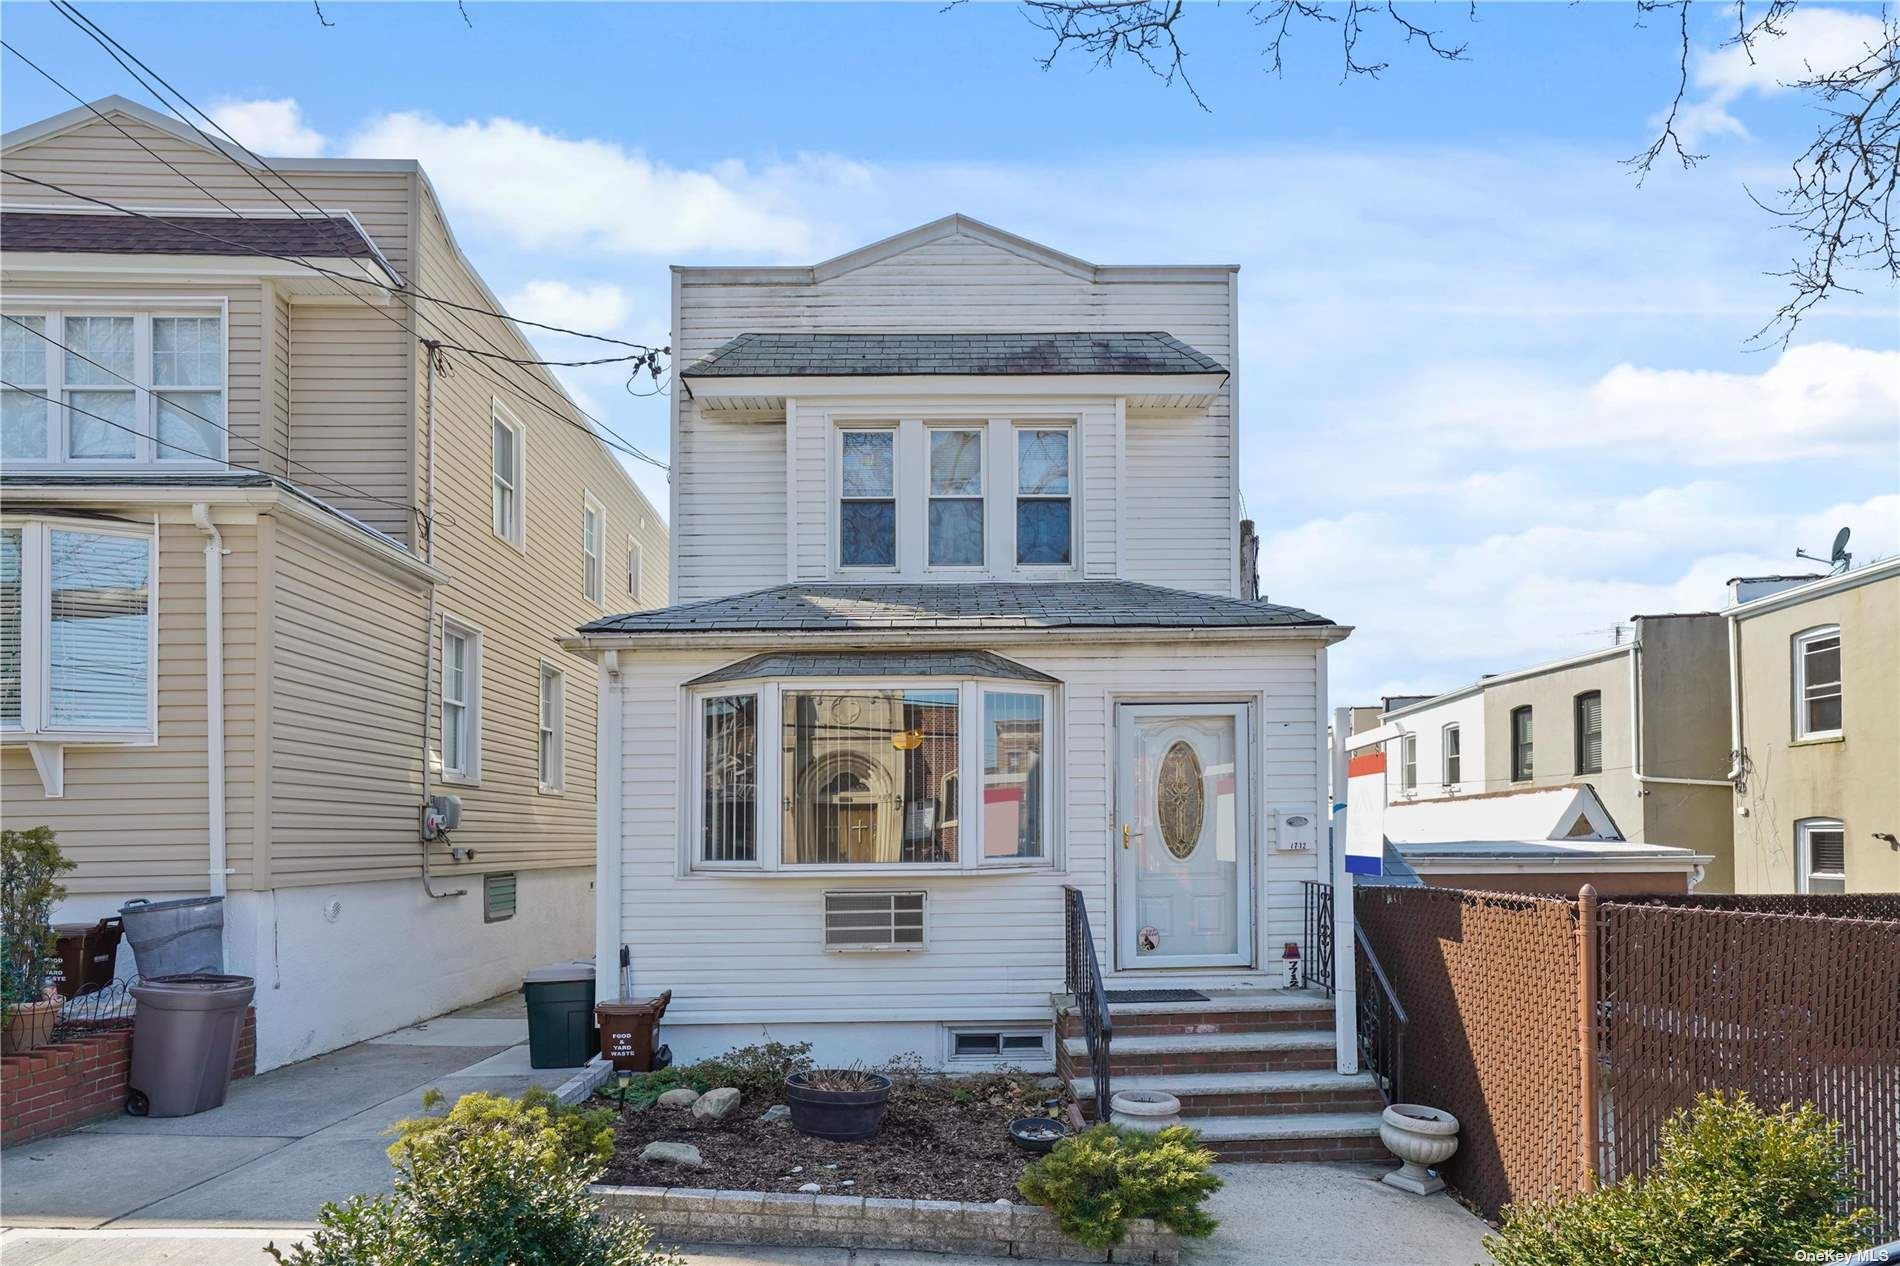 77-12 64th Place, Glendale, NY 11385 - MLS#: 3274610